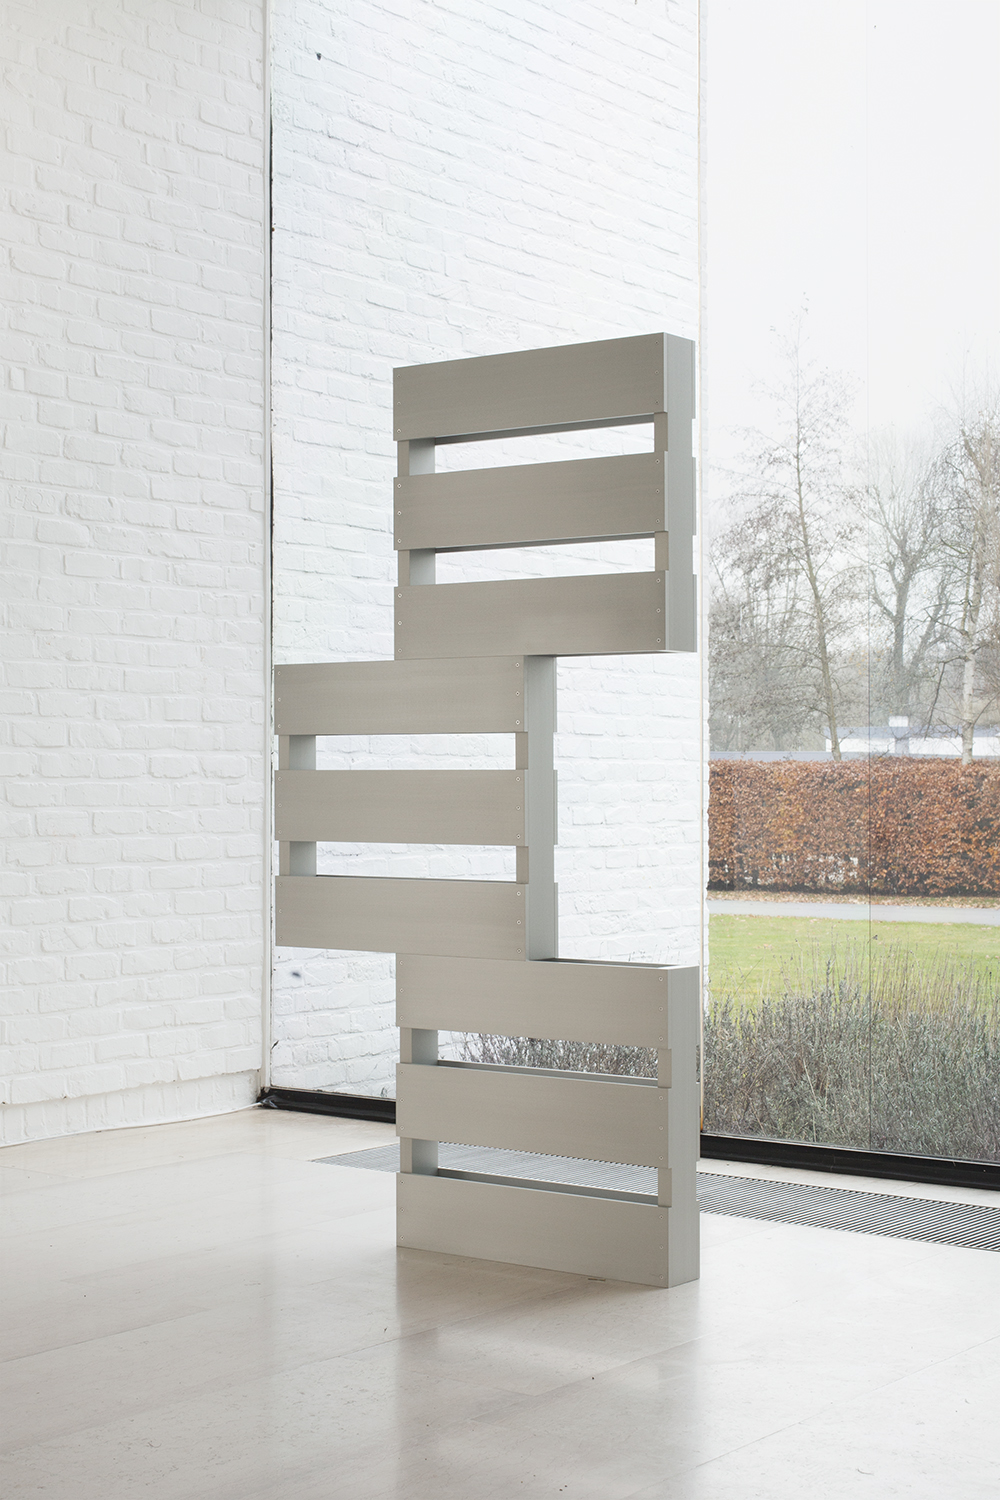 Dylan Lynch  Omit the Logic , 2014 Steel 72 x 38 x 4.5 inches